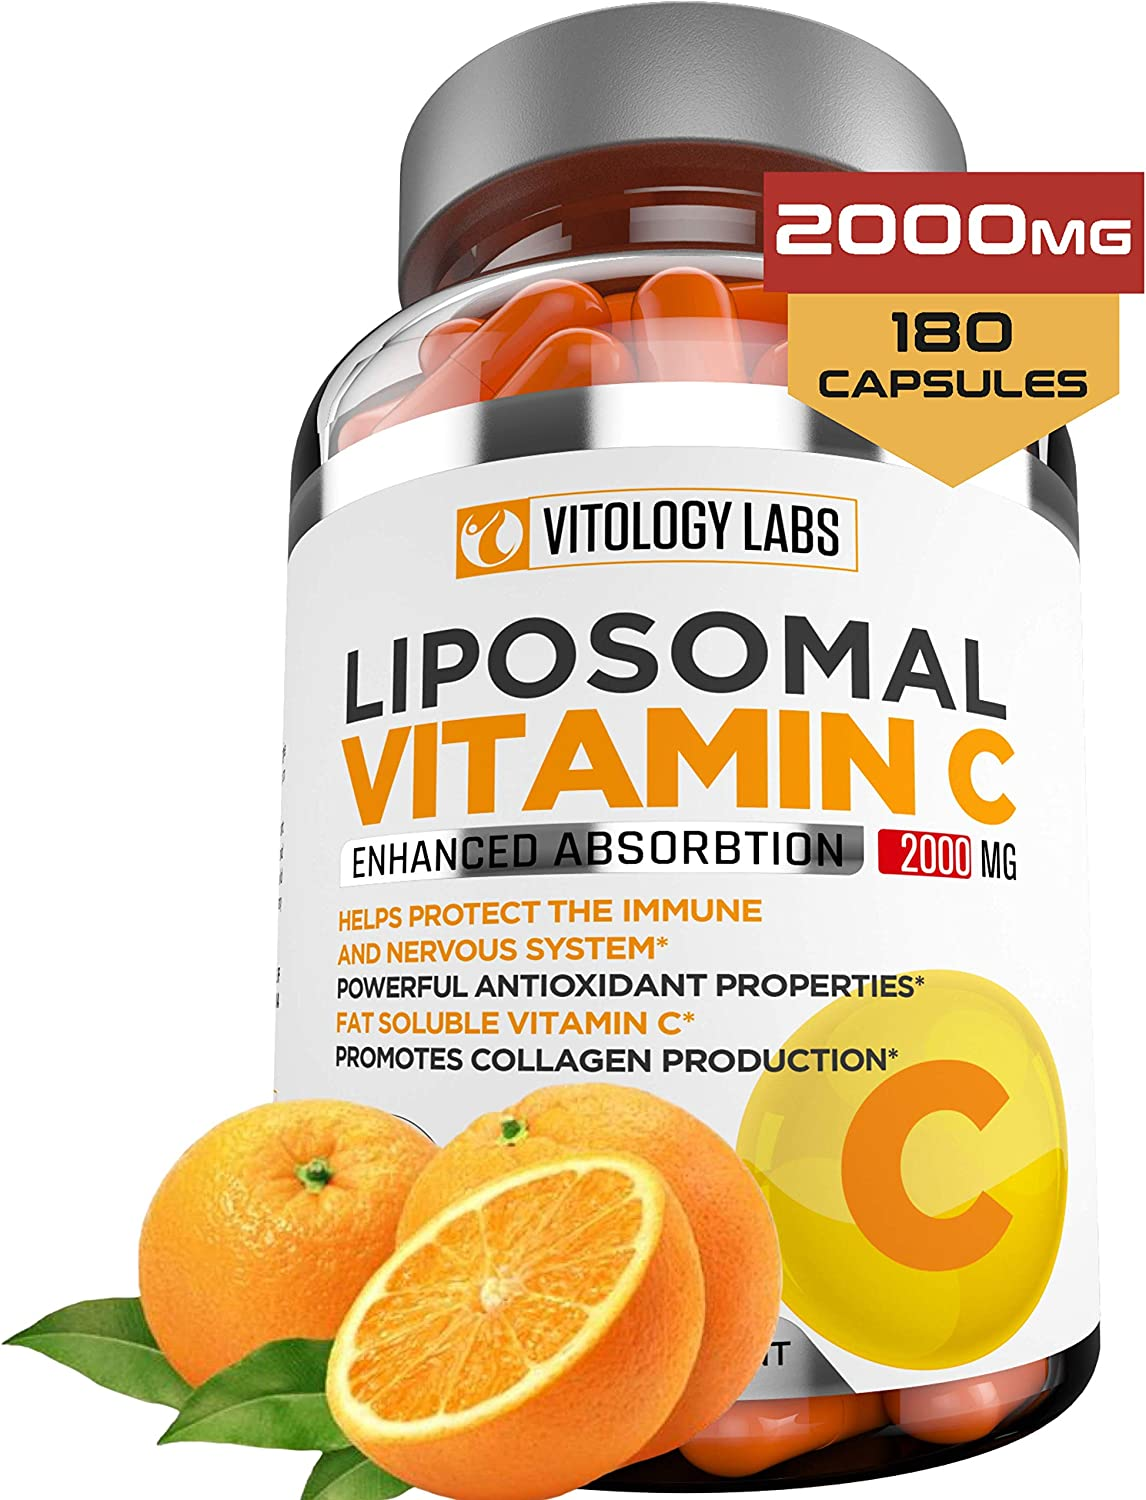 Vitology Labs Liposomal Vitamin C 2000mg - 180 Capsules –Ultra Potent High Absorption Ascorbic Acid, Supports Immune System & Collagen Booster - Powerful Antioxidant High Dose Fat Soluble Lypo Spheric